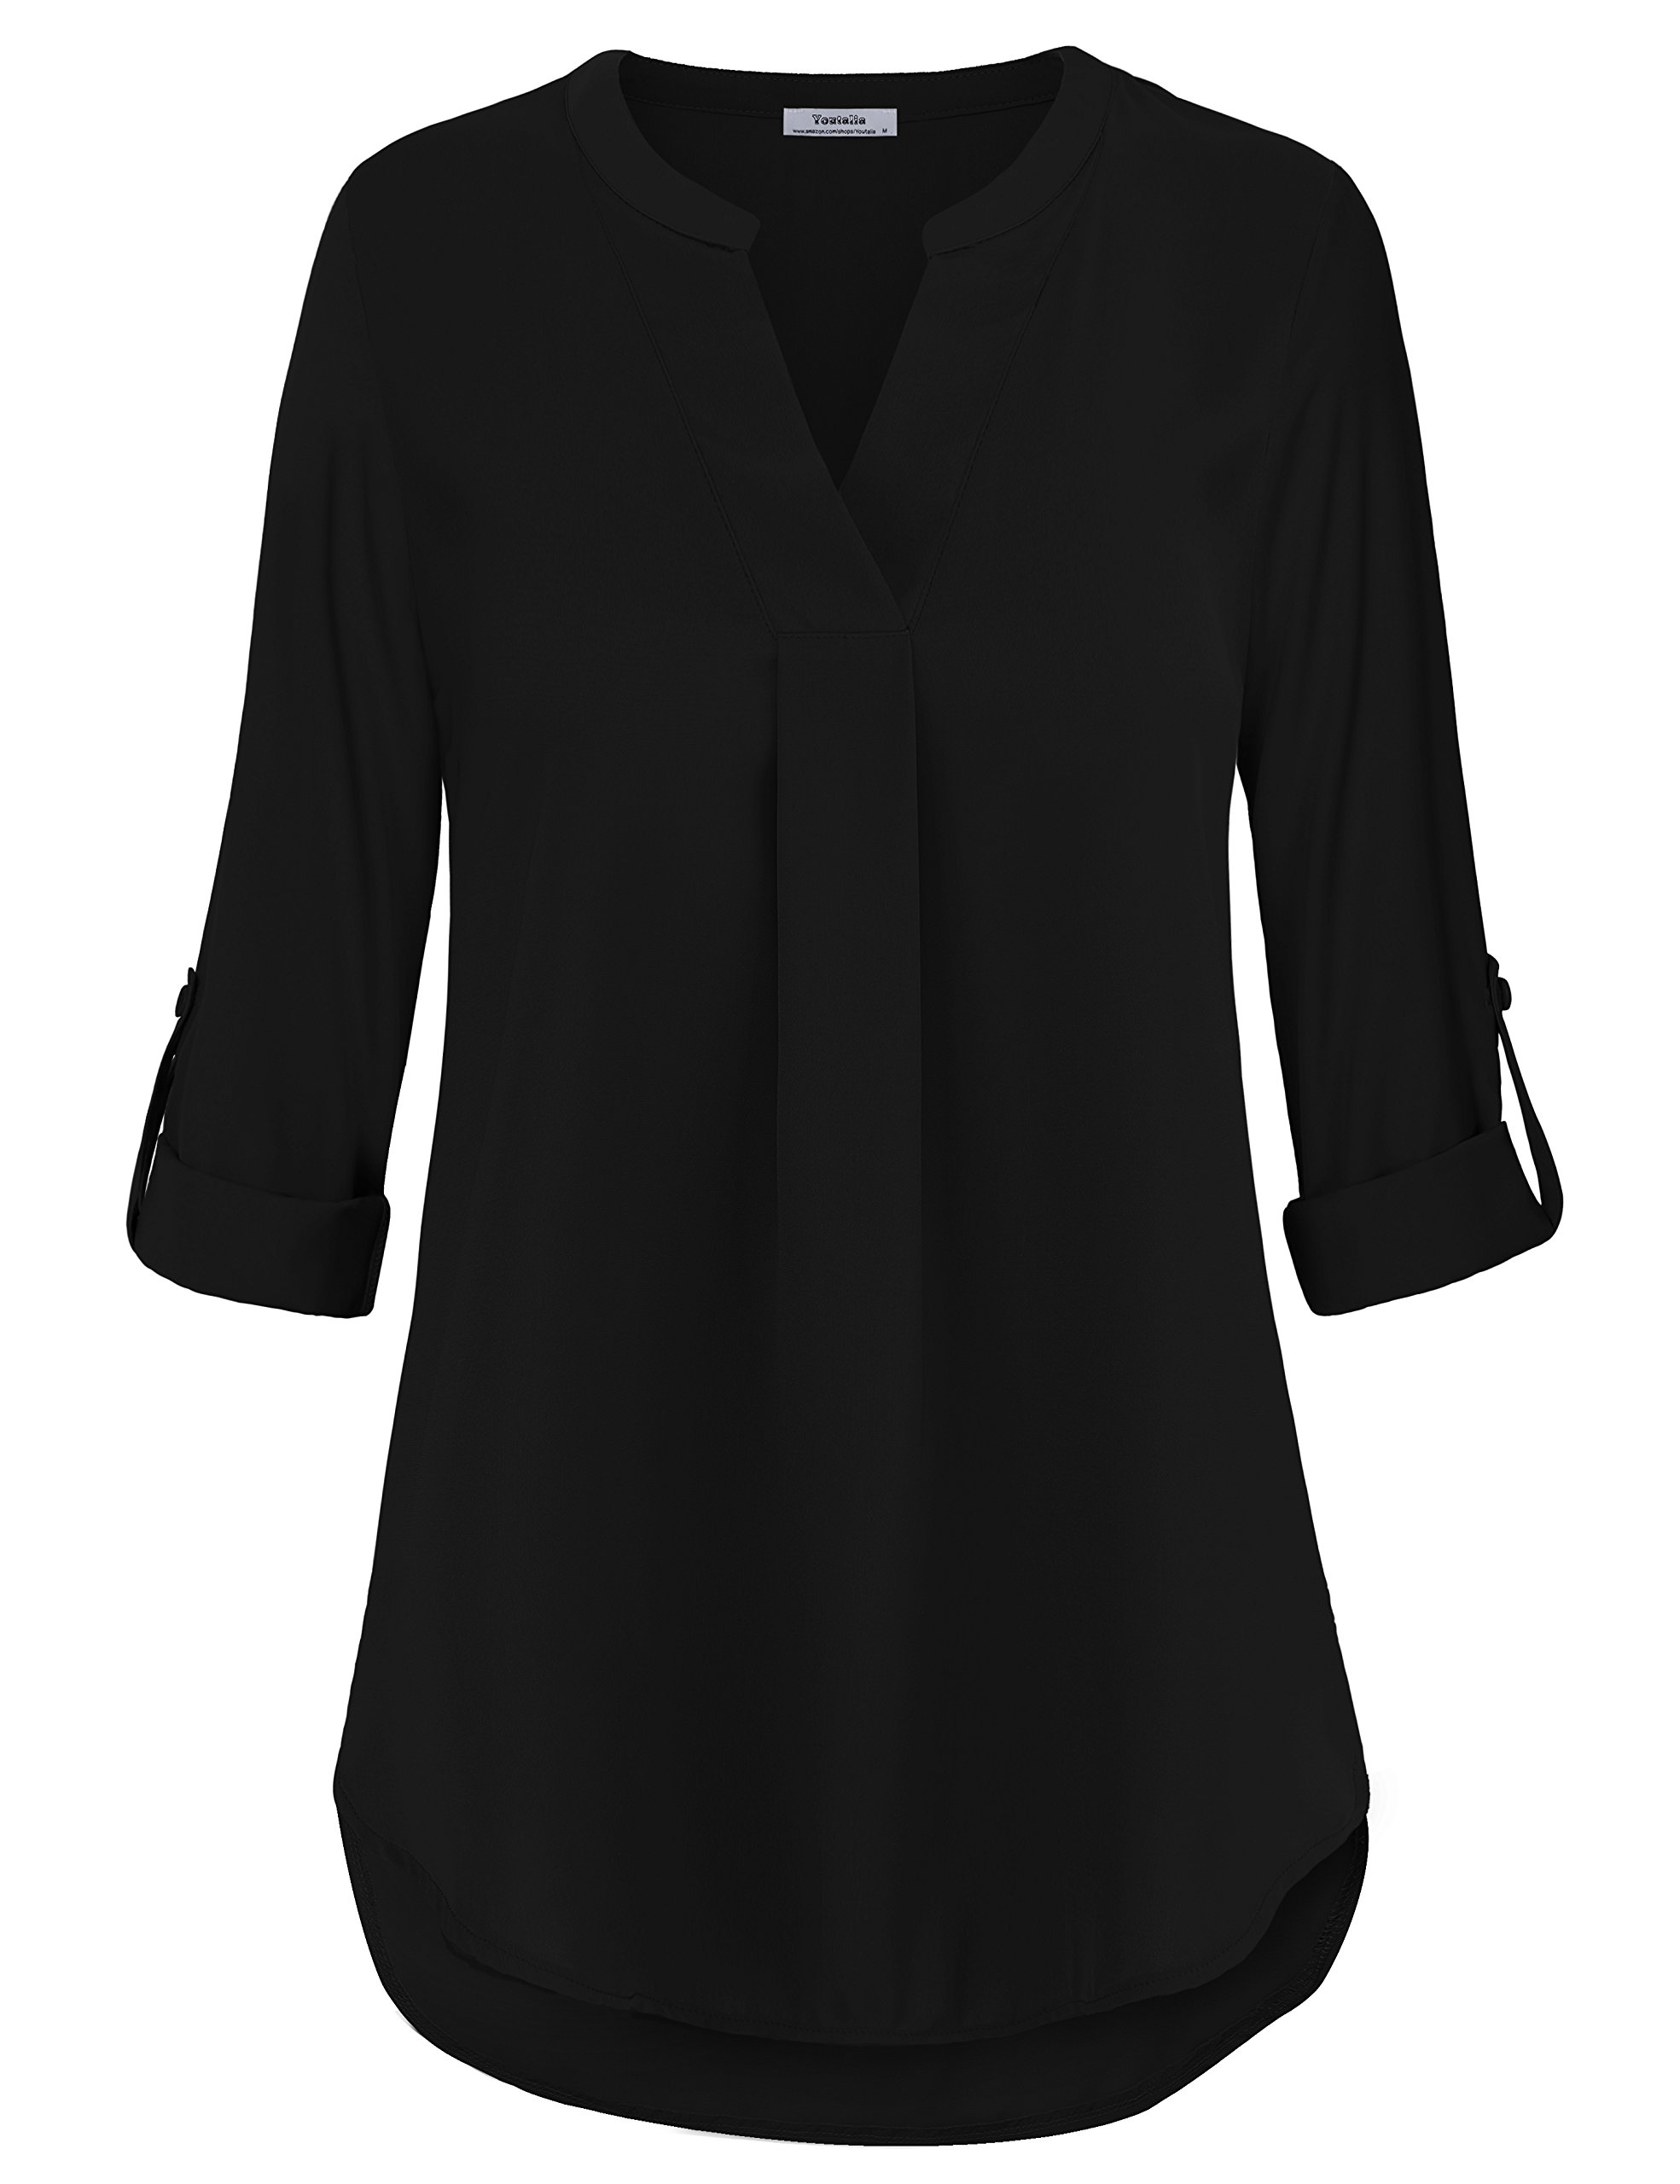 Casual Tunic Shirt,Business Casual Tops for Women Loft Clothing Pleated Front Swing Flowy Tops Prime Dressy Designer Fall Clothing Black,XL